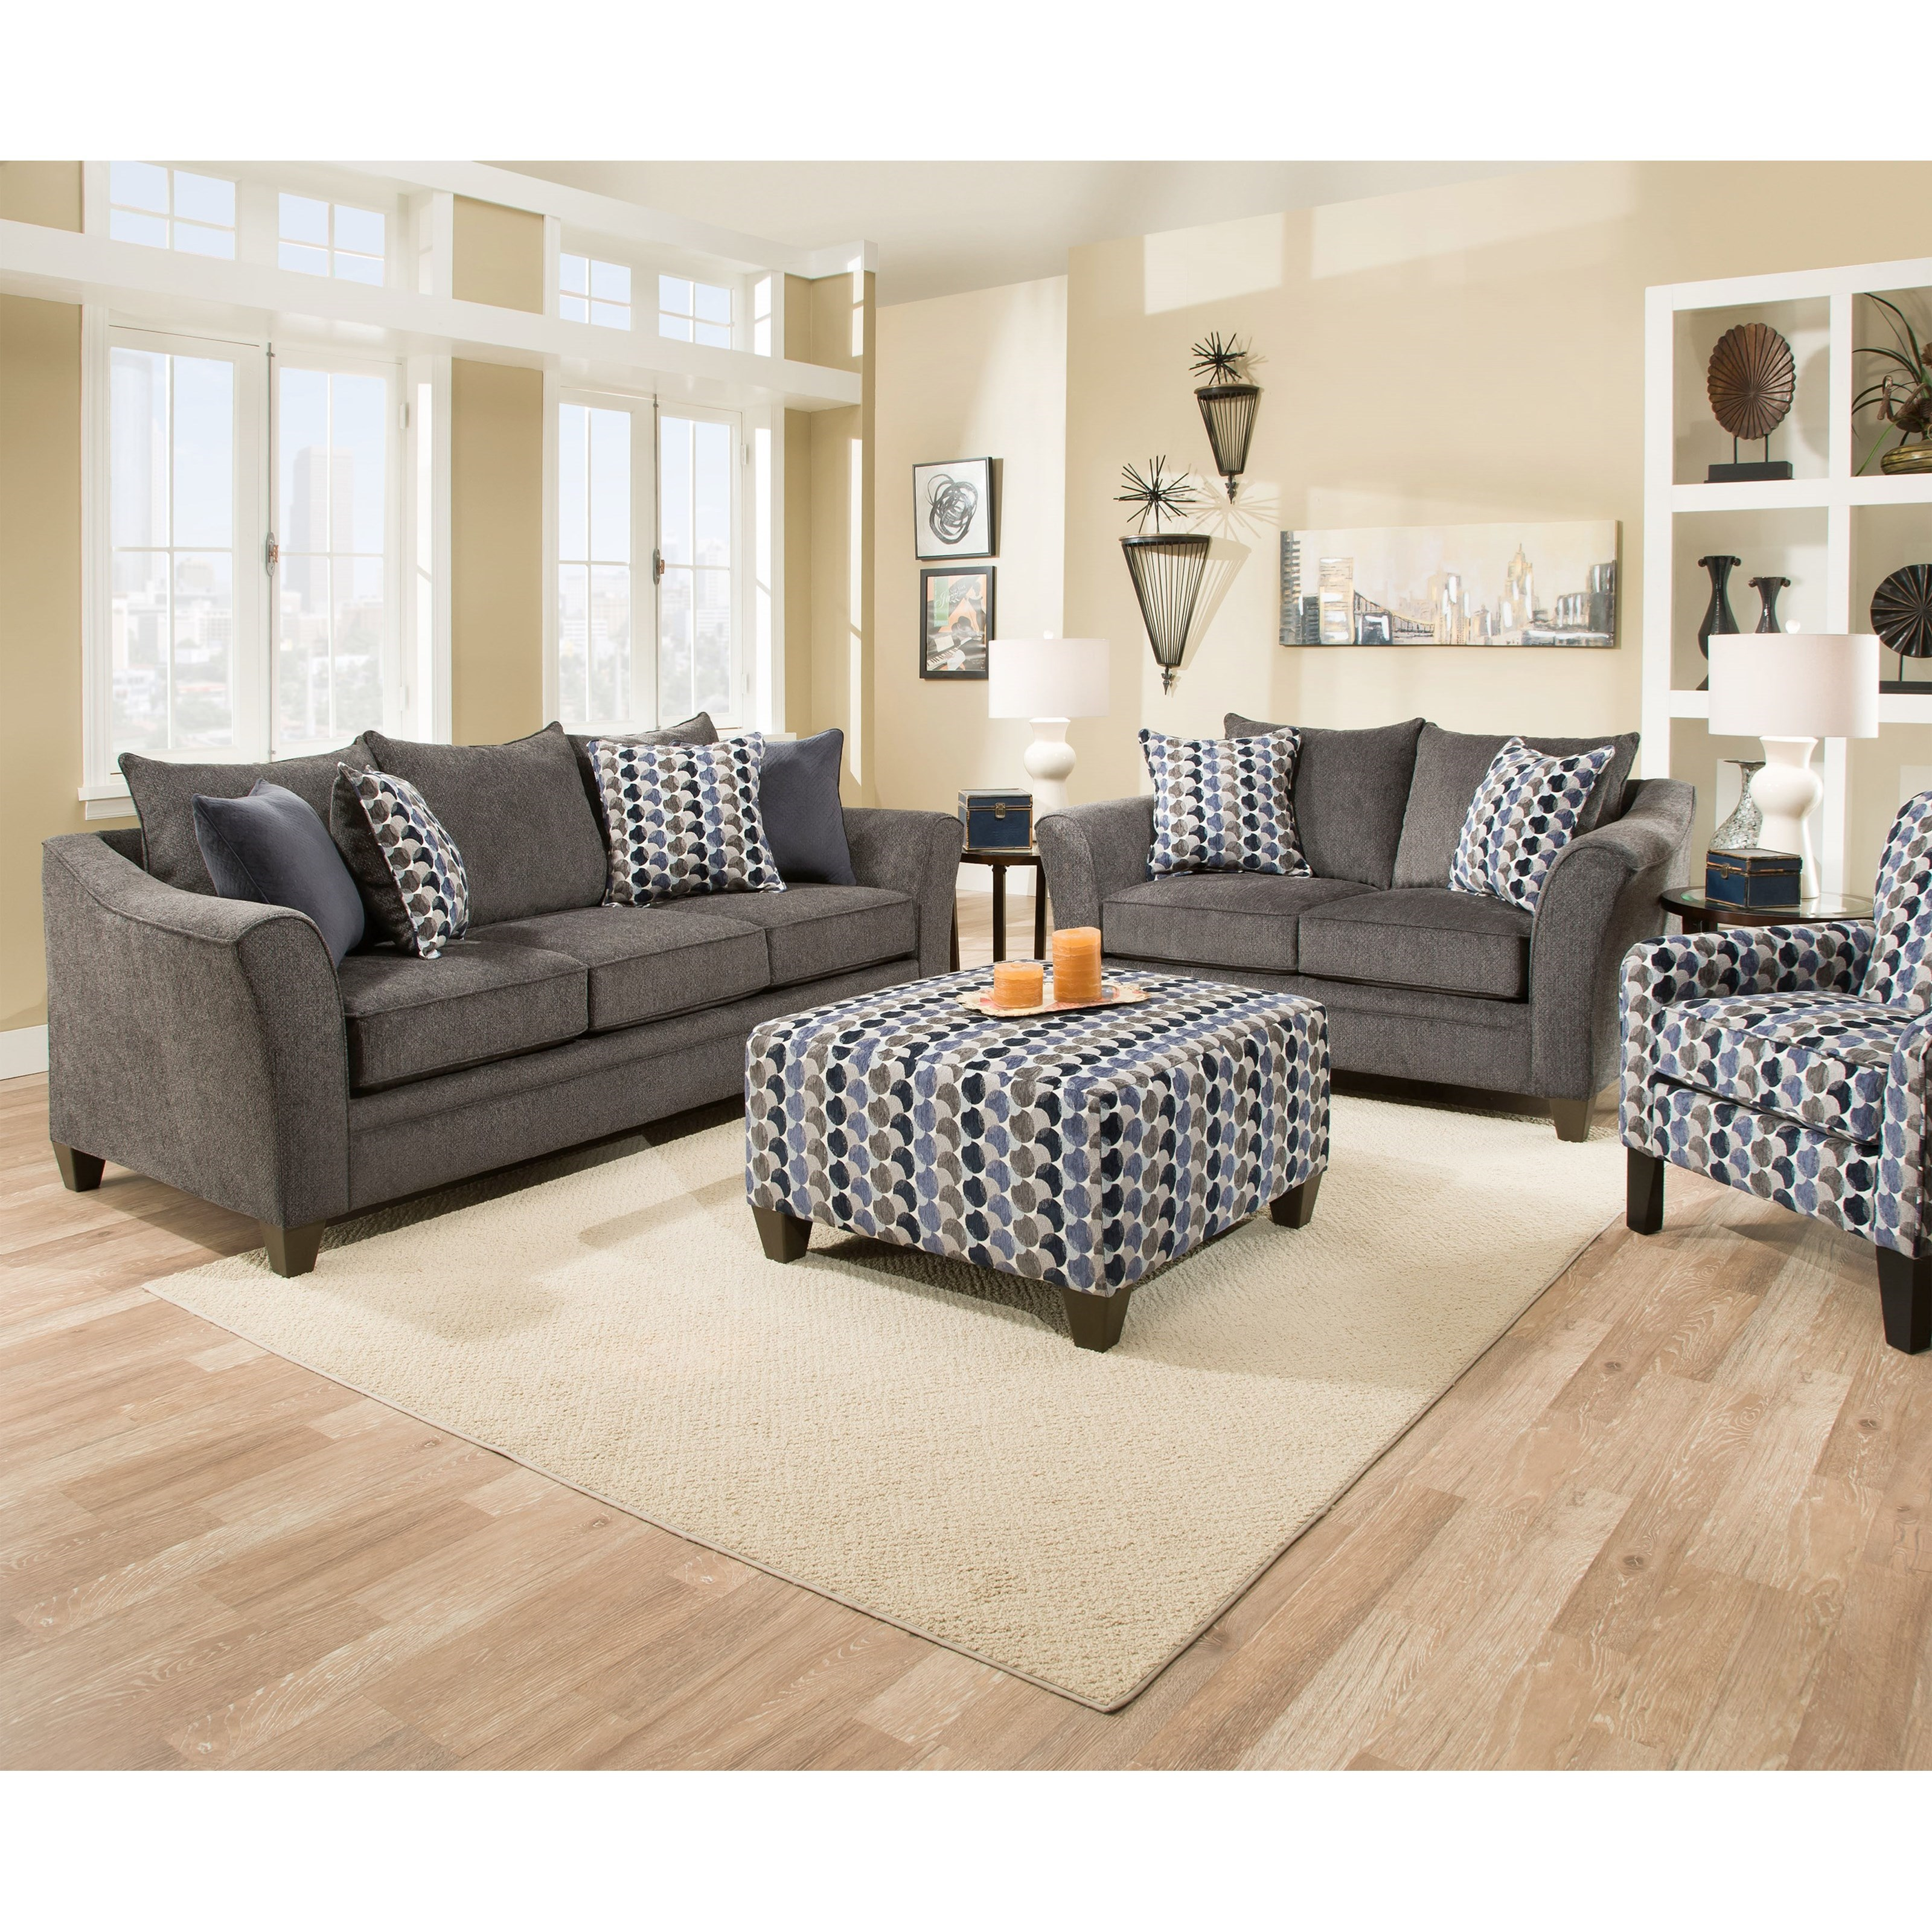 United furniture industries 6485 stationary living room for Living room furniture groups